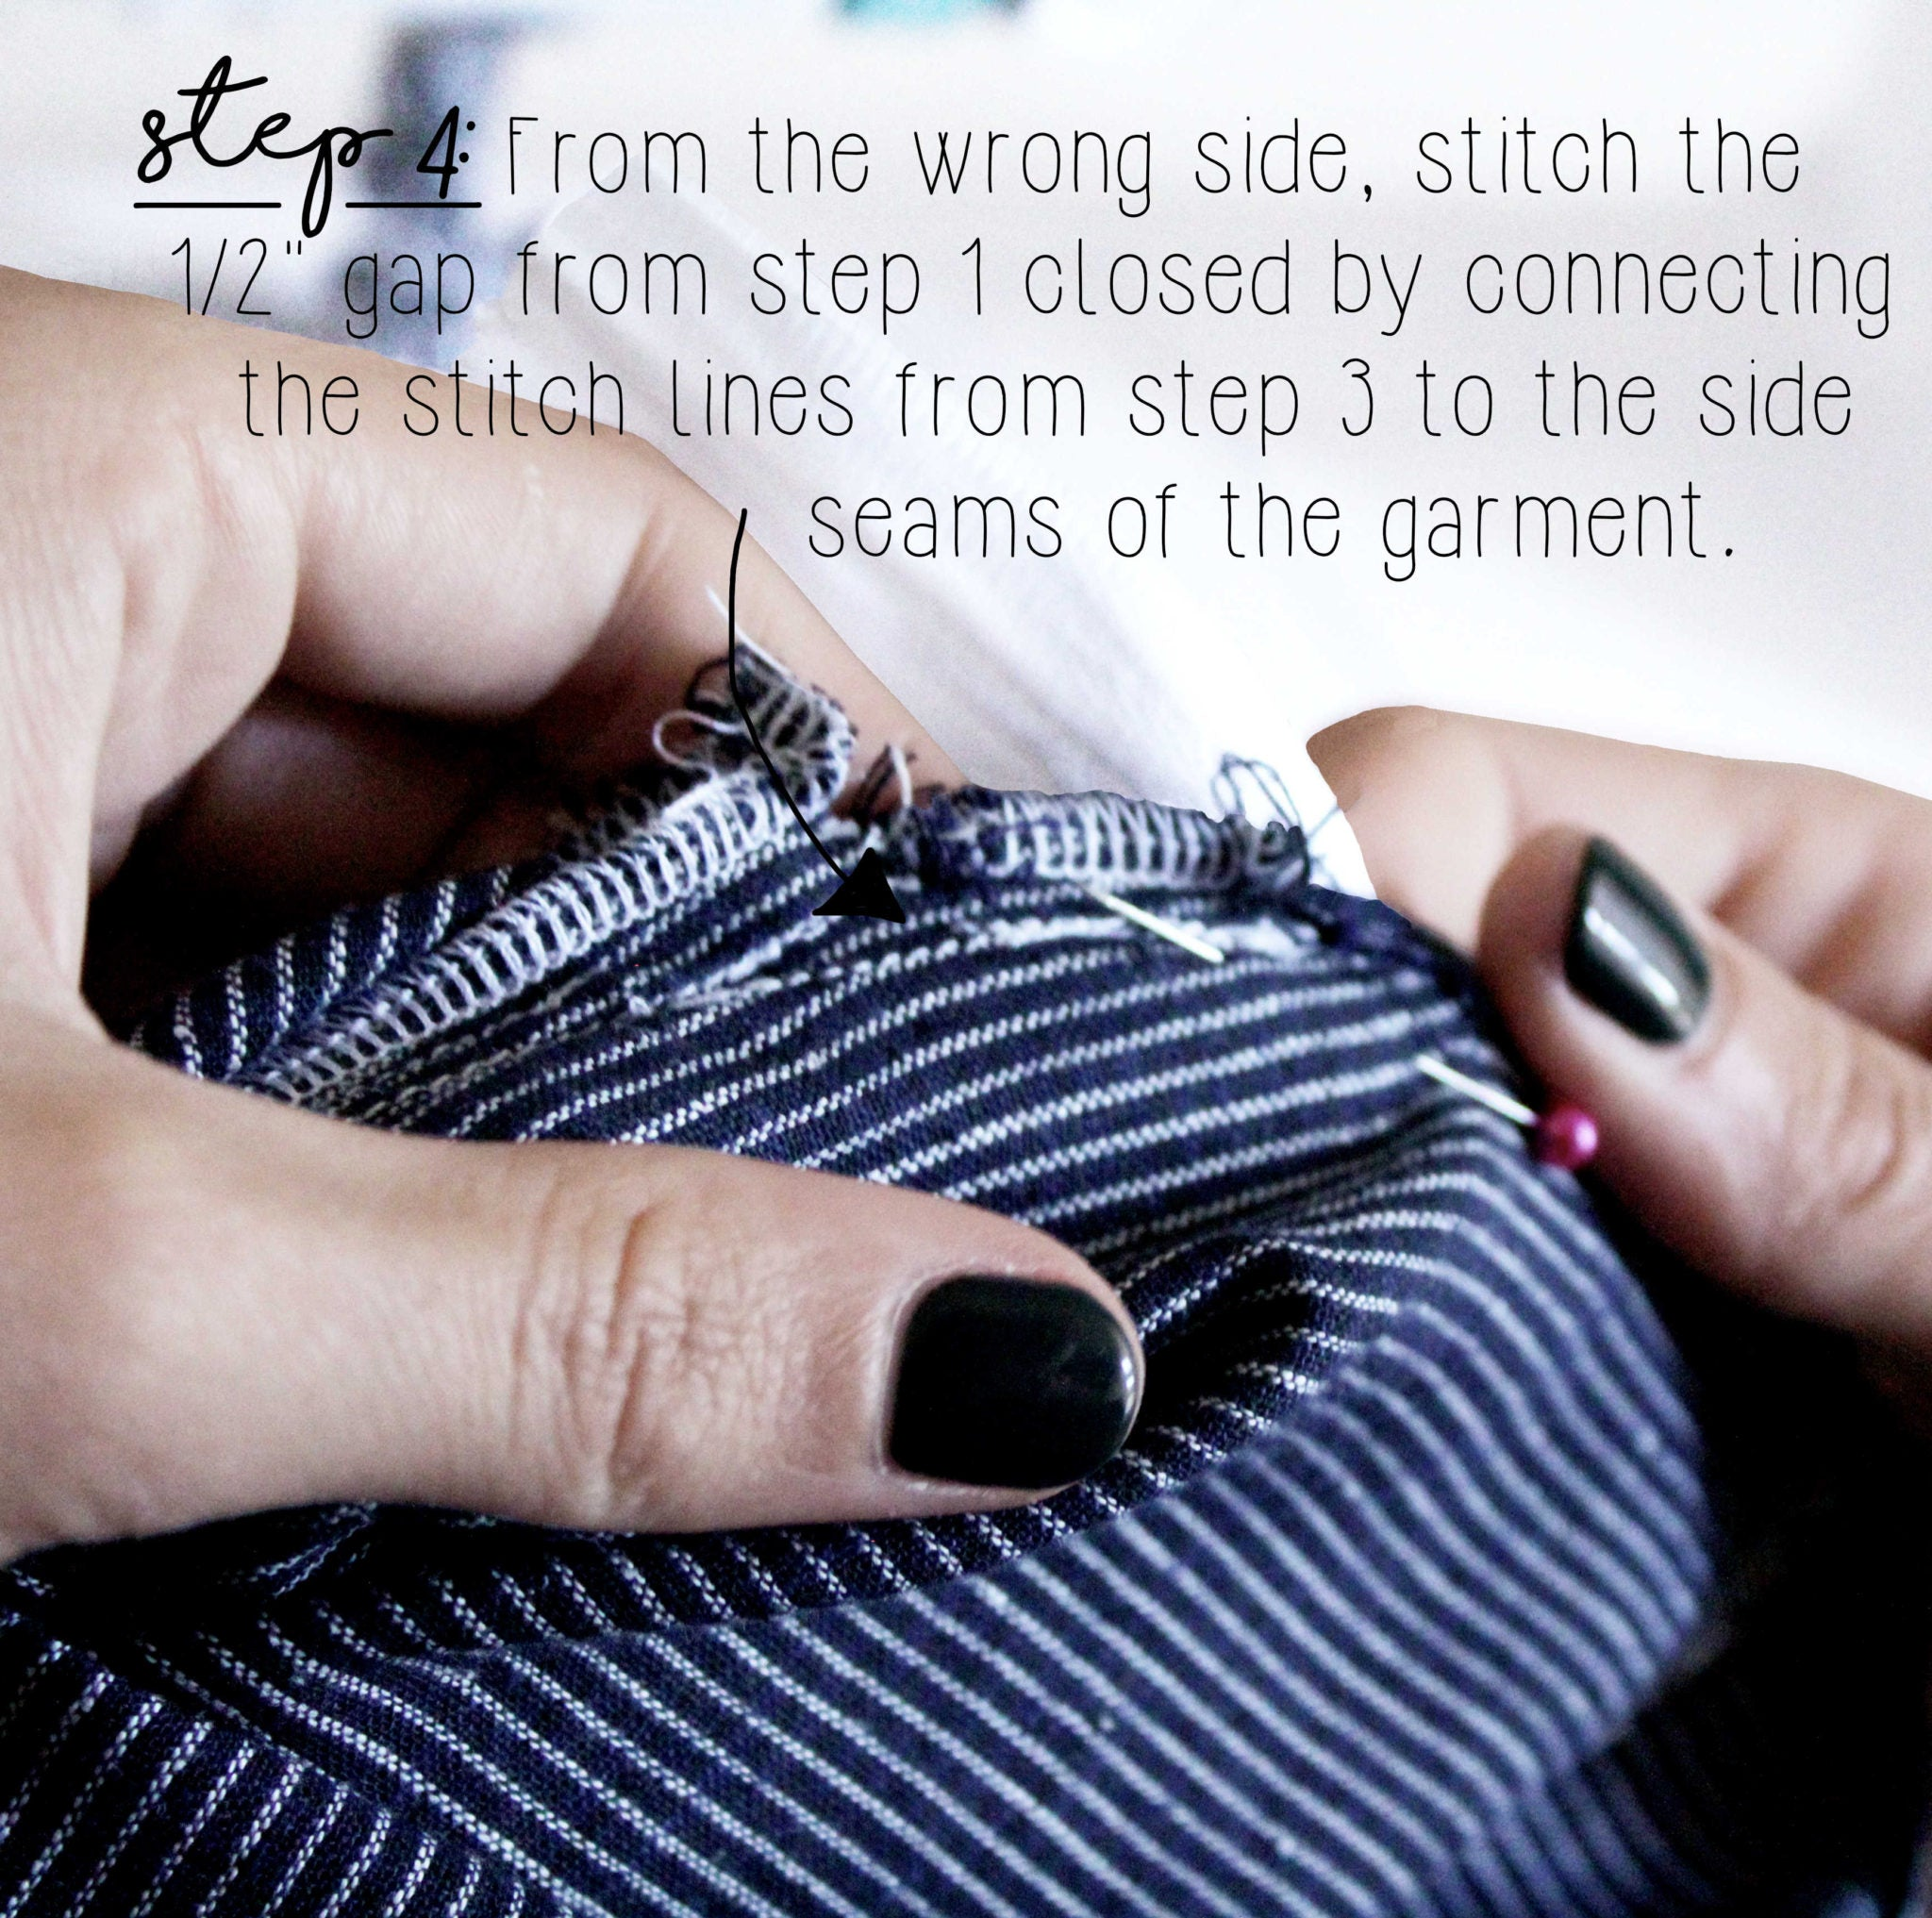 How To Sew An Invisible Zipper Sewing Tutorial: Step 4